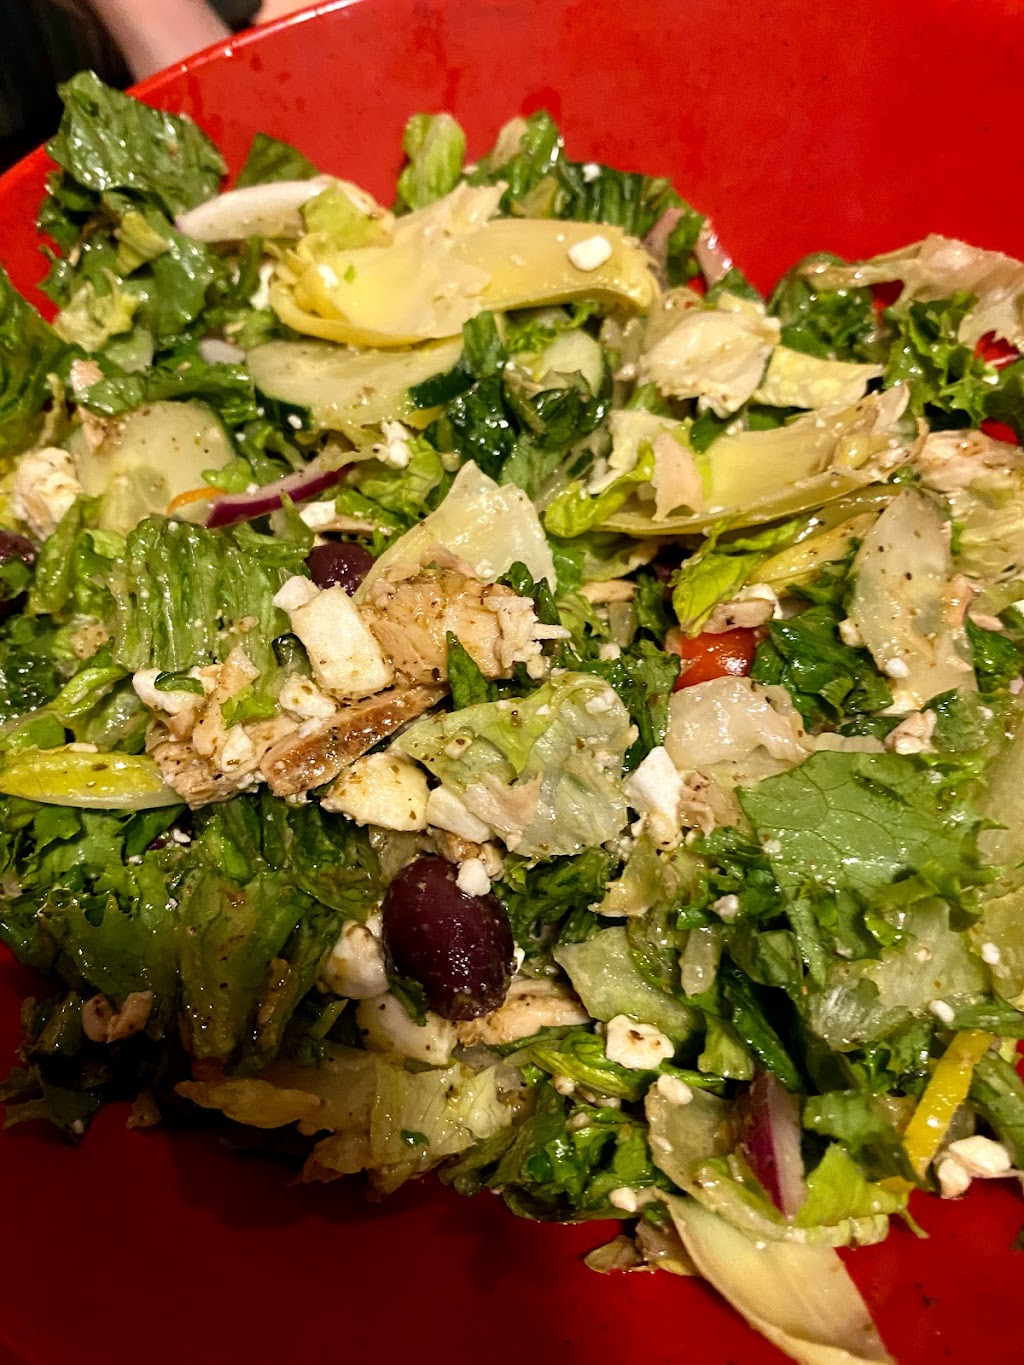 Newks Eatery - restaurant    Photo 5 of 10   Address: 2613 Gulf to Bay Blvd #1650, Clearwater, FL 33759, USA   Phone: (727) 726-6395